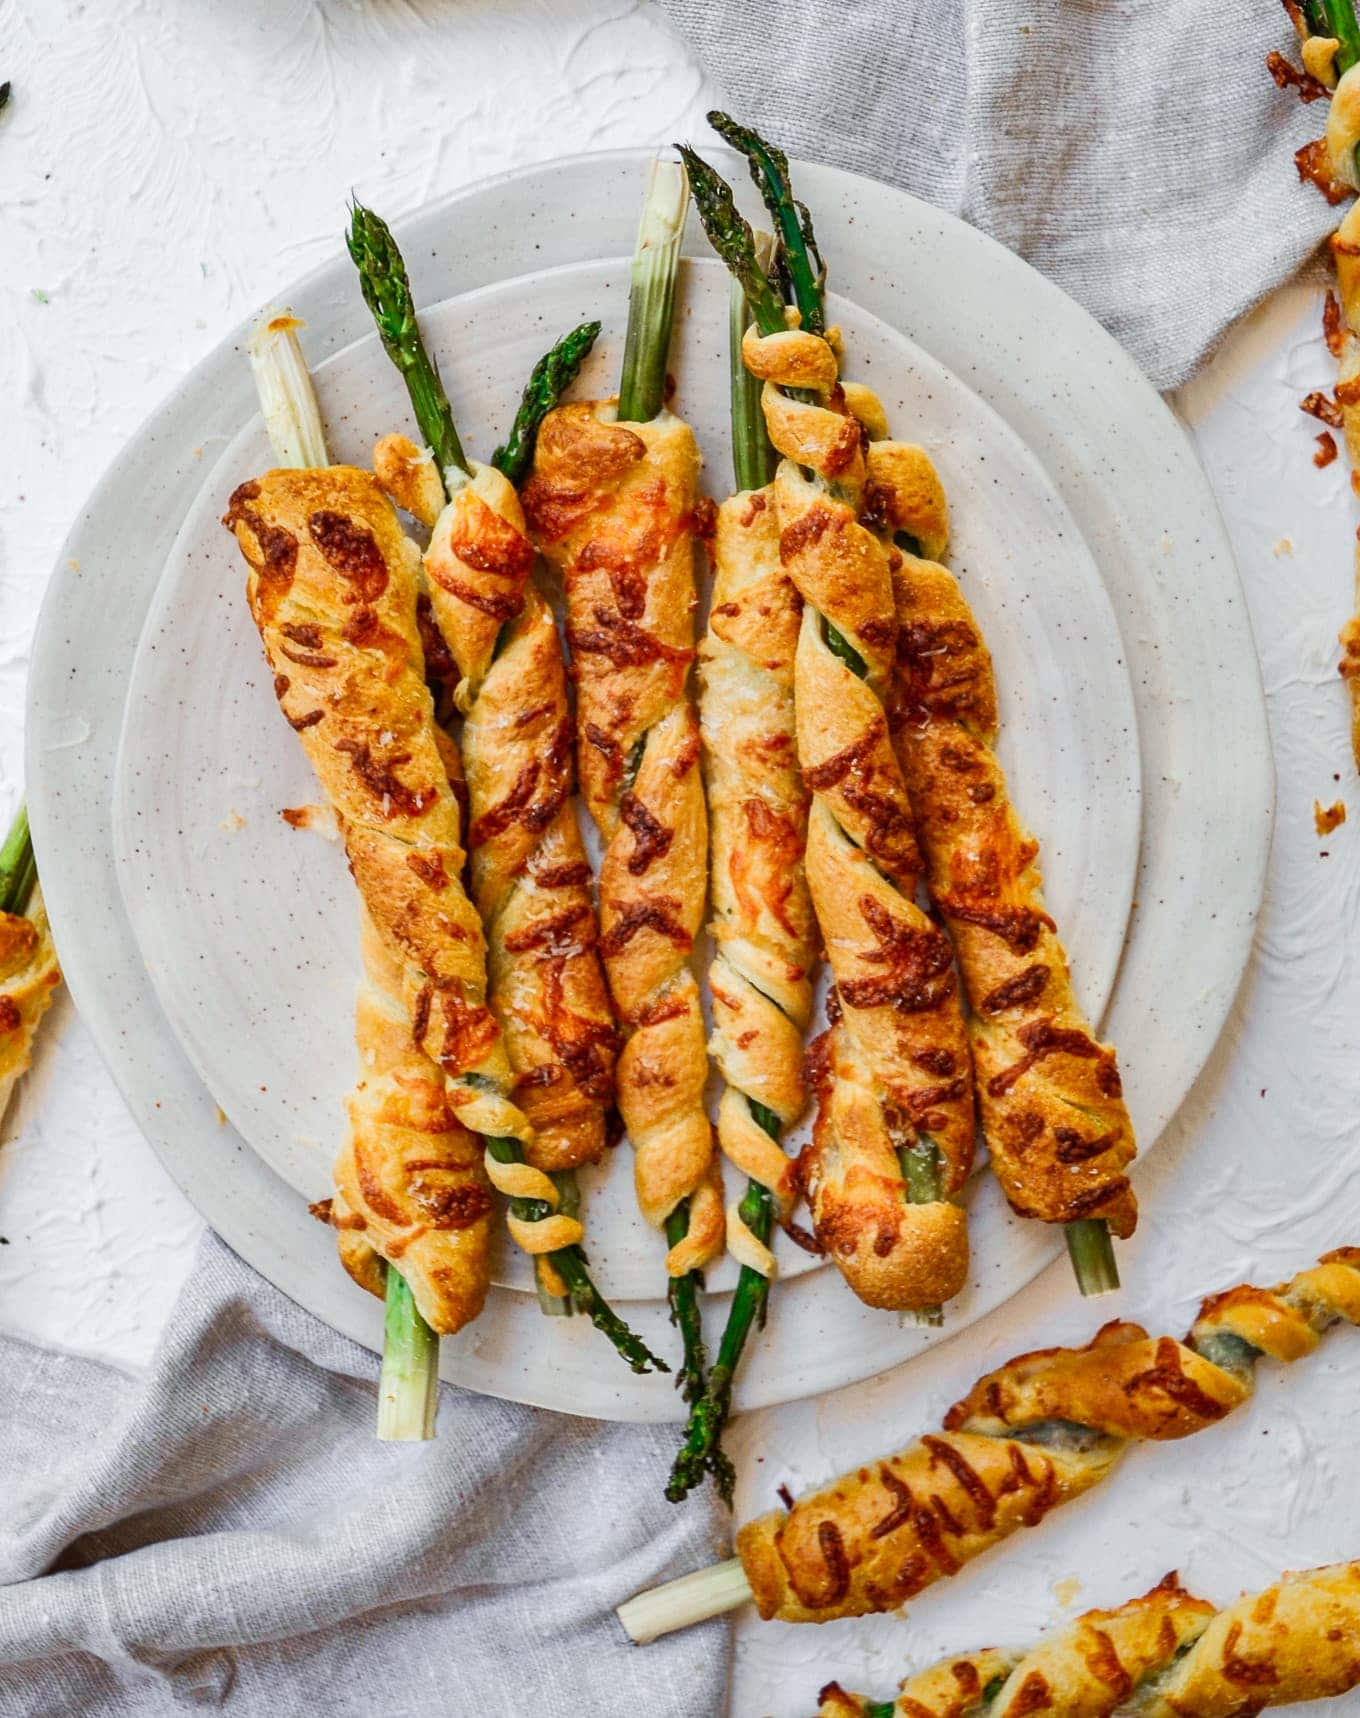 asparagus wrapped in crescent rolls